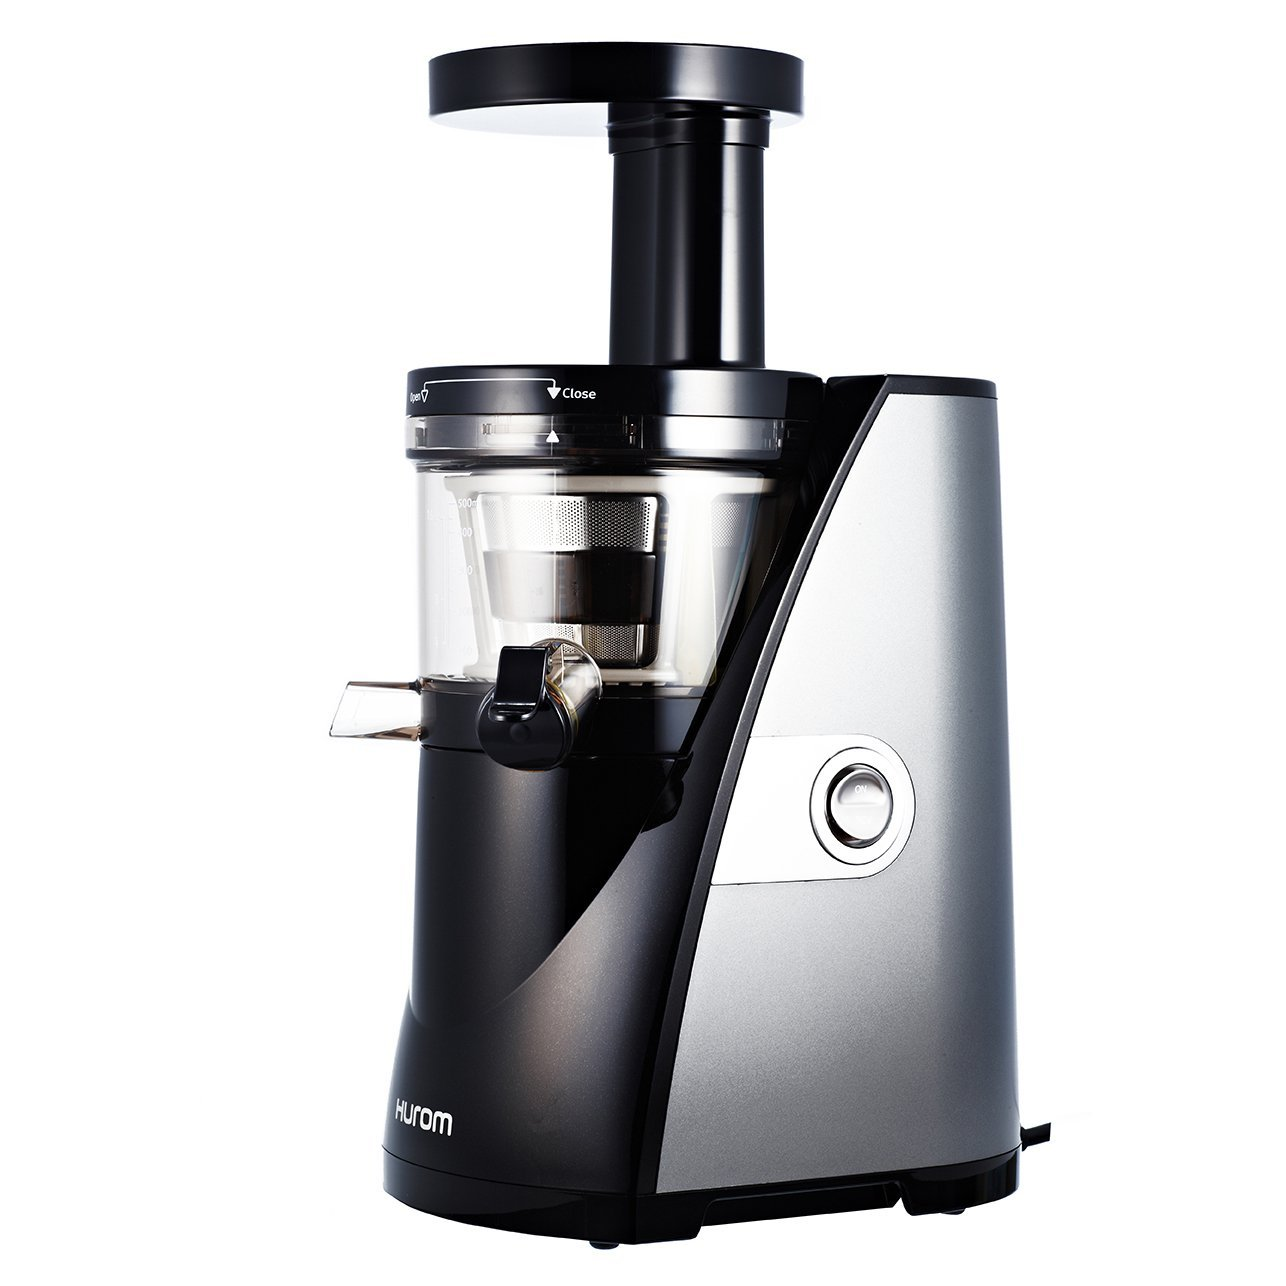 Hurom Slow Juicer Machine : 5 Best Hurom Juicer Reviews UPDATED: 2018 The Home Savant